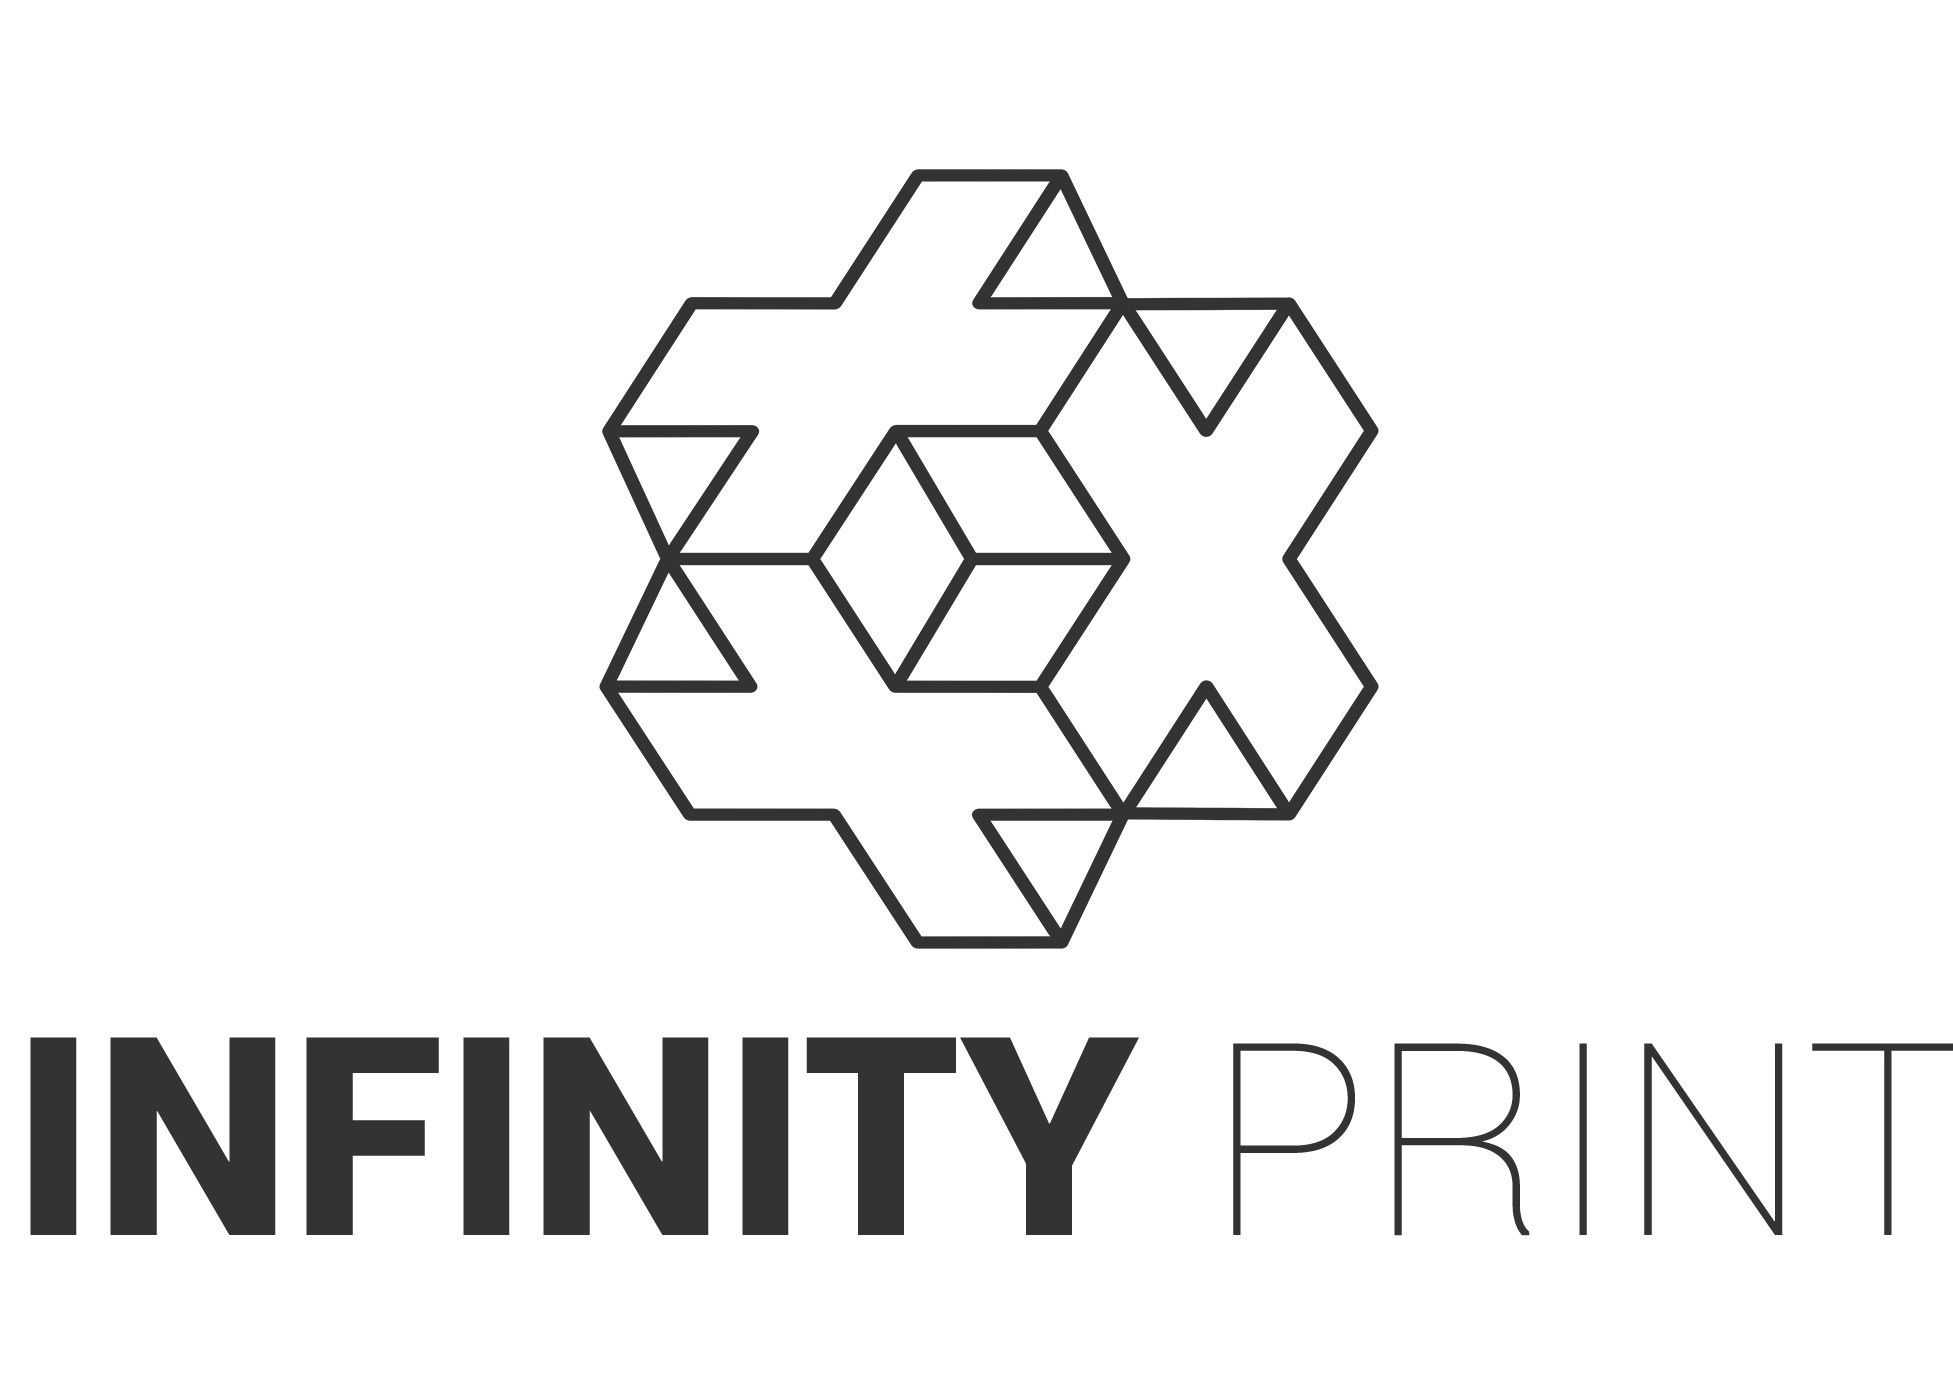 Fancy Introduction Infinity Print Makers Novi Sad Meetup E To Infinity Icav Integral E To Infinity dpreview E To Infinity